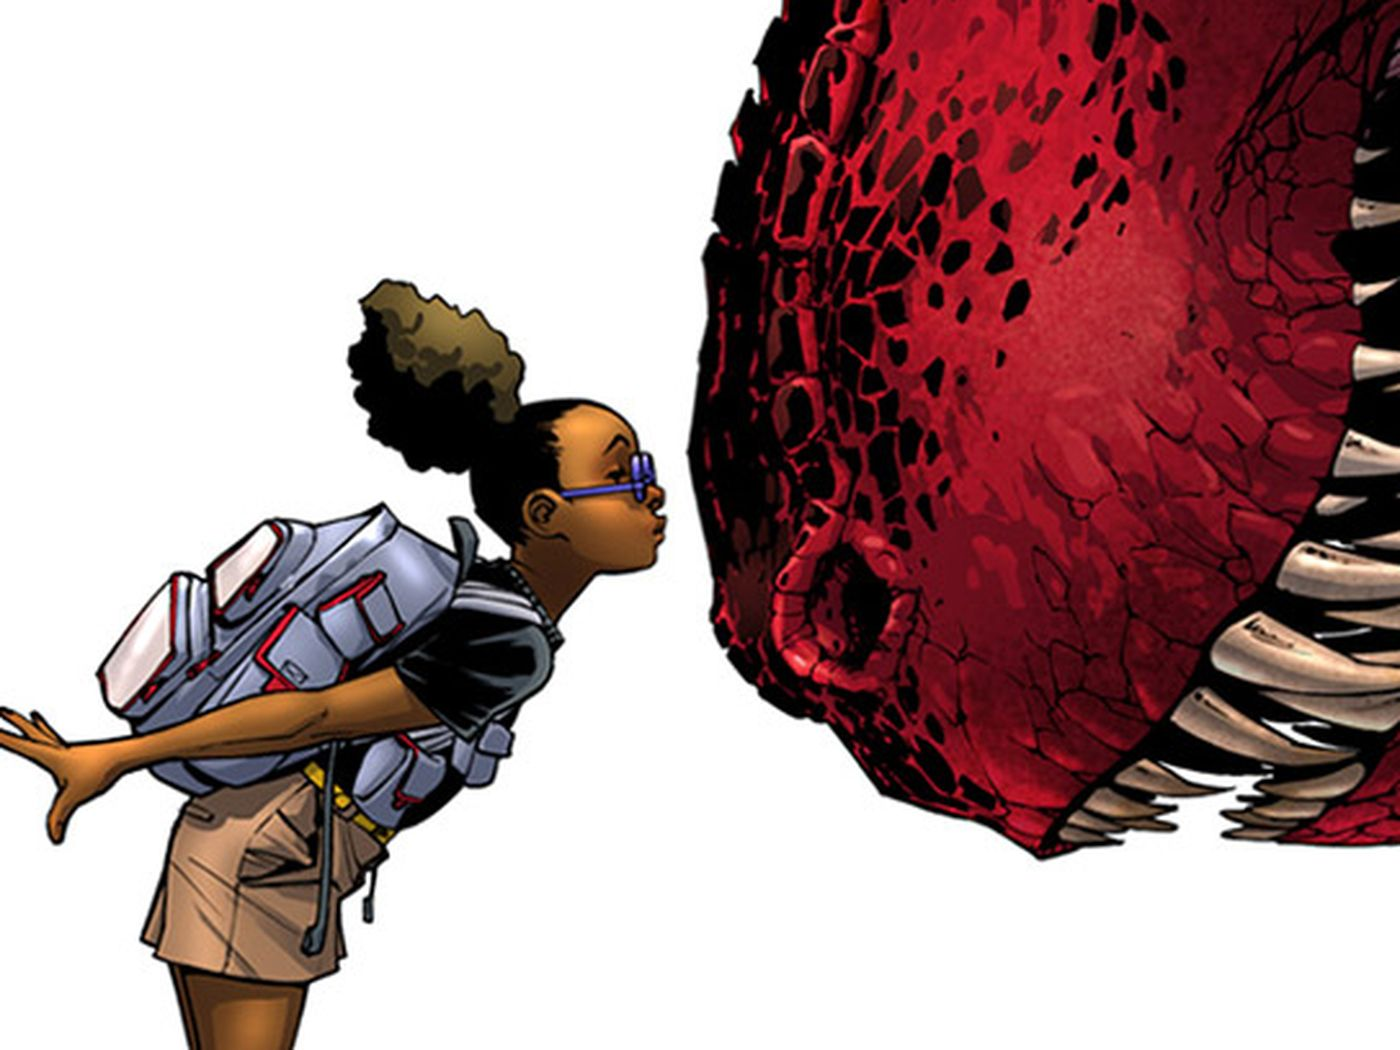 Little Lunella Lafayette goes in to kiss Devil Dinosaur's giant red nose